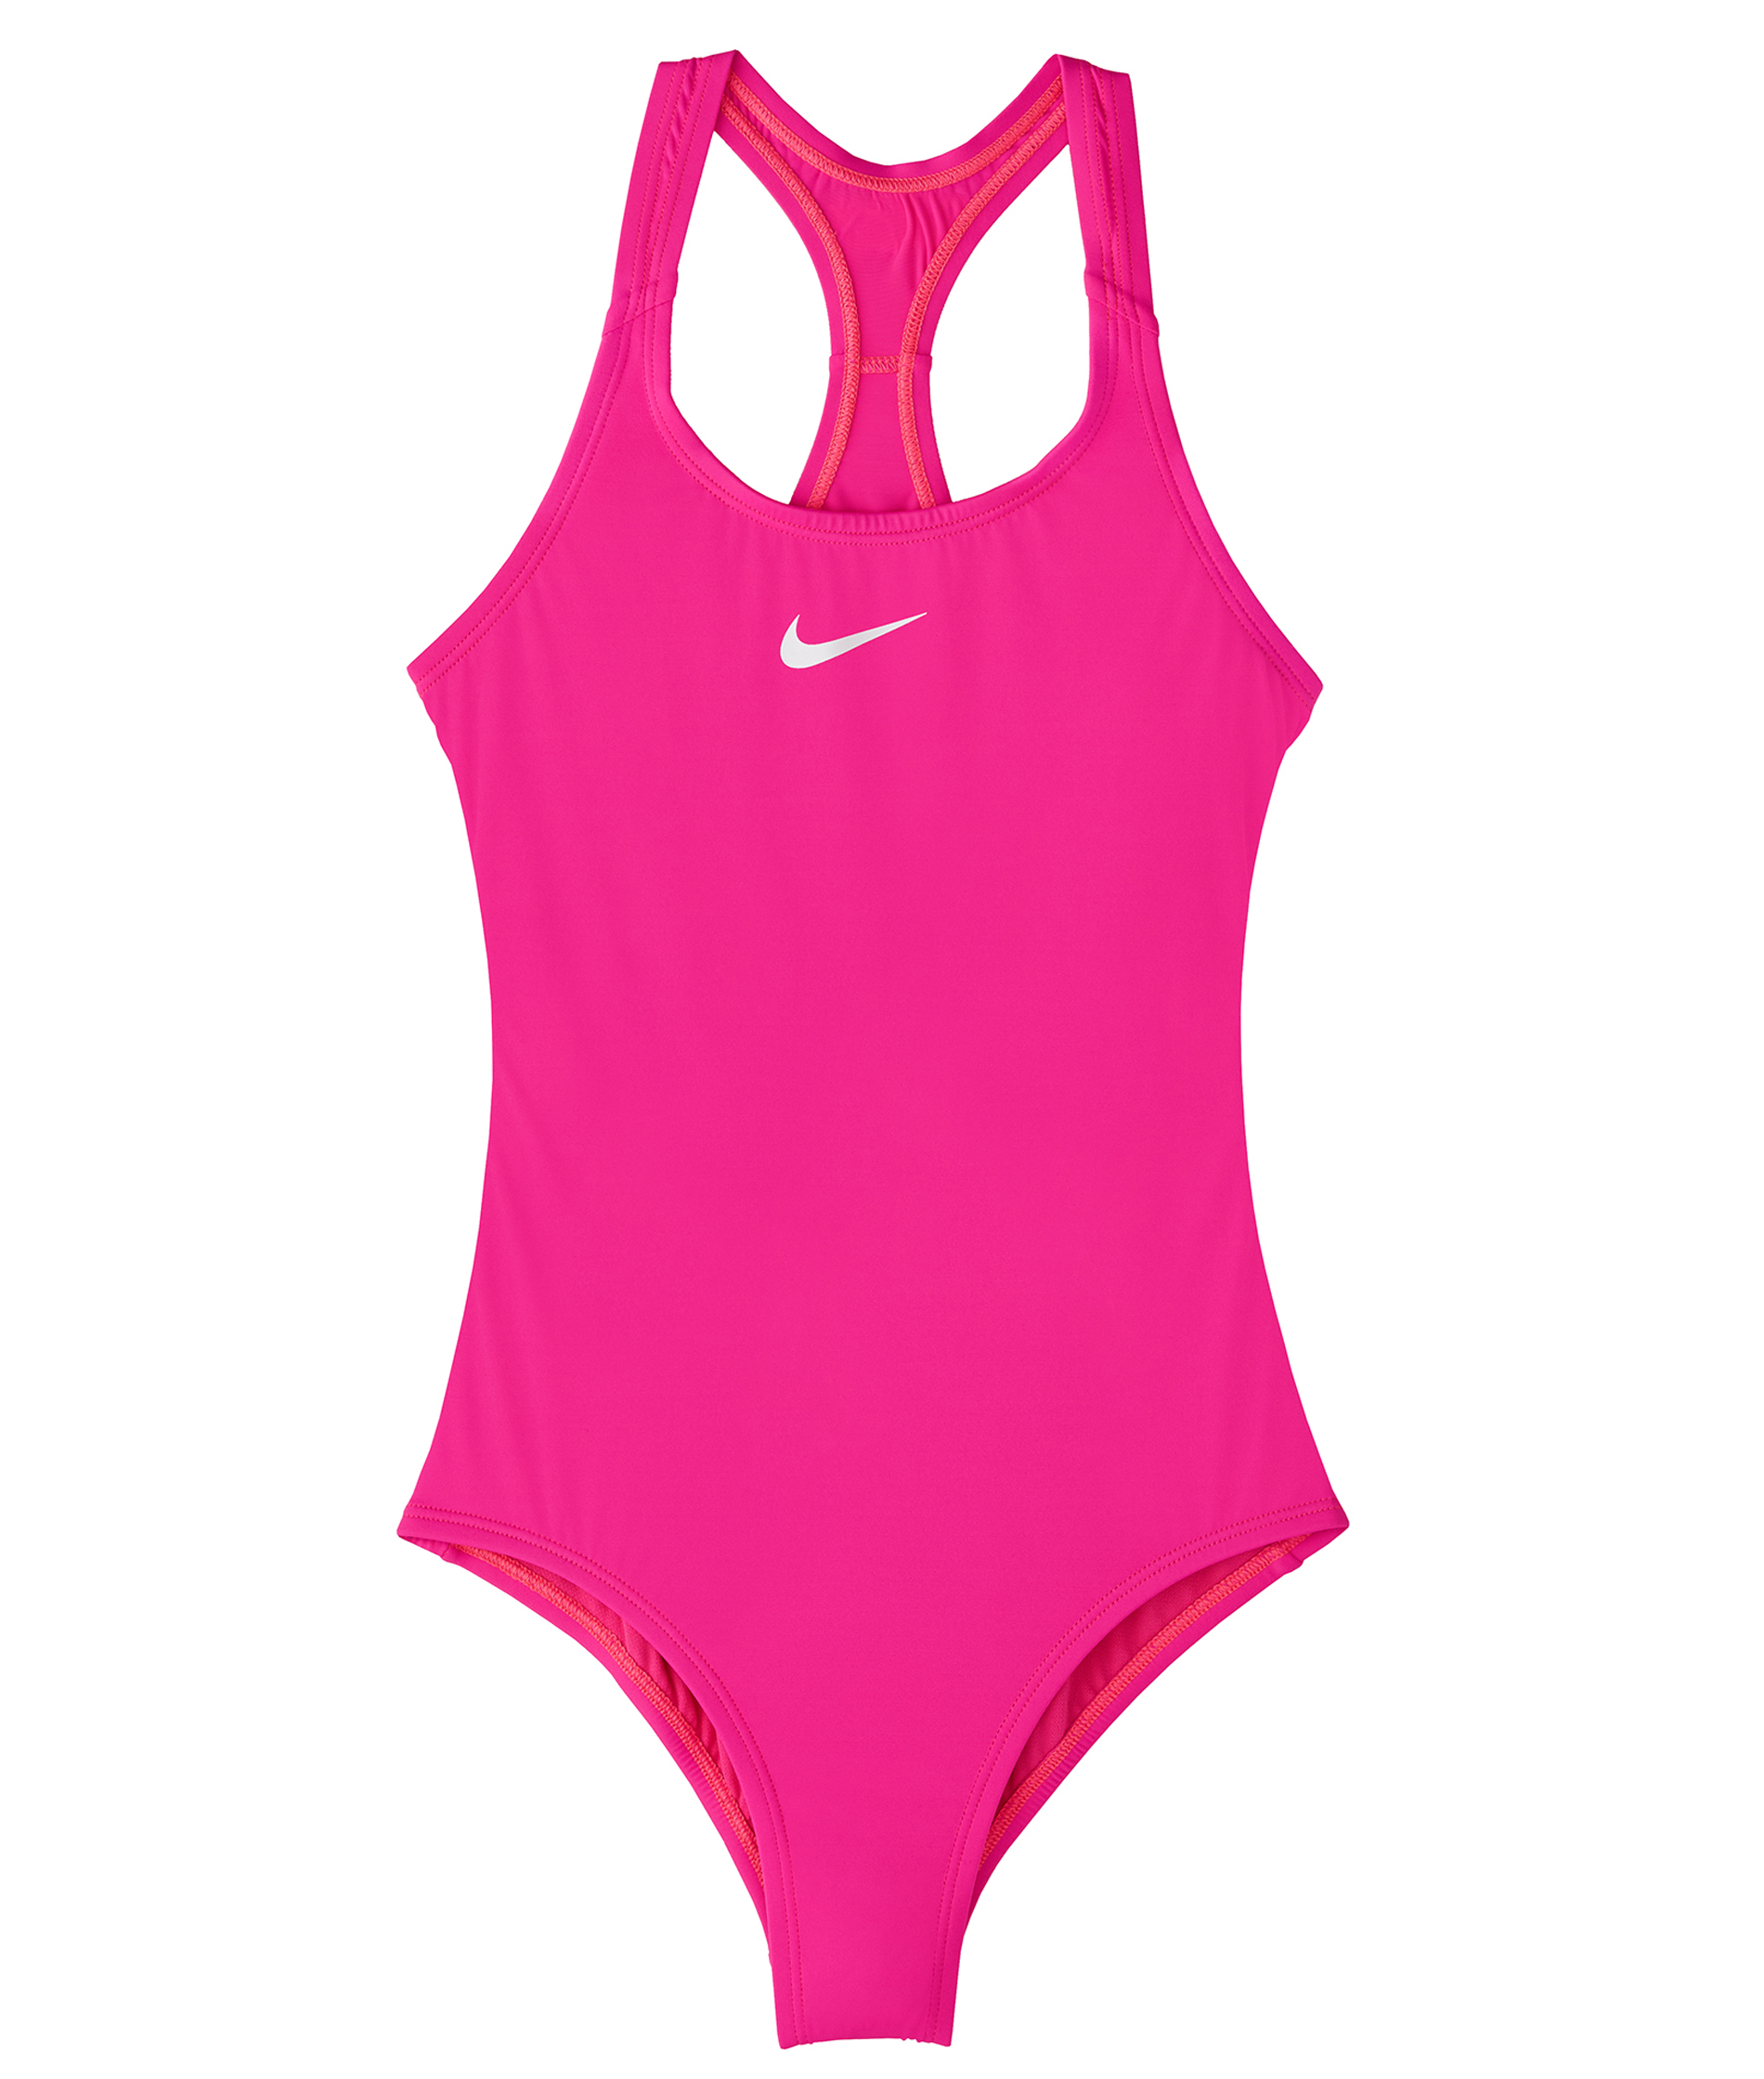 Nike Girls Solid Racerback One Piece - Laser Fuchsia